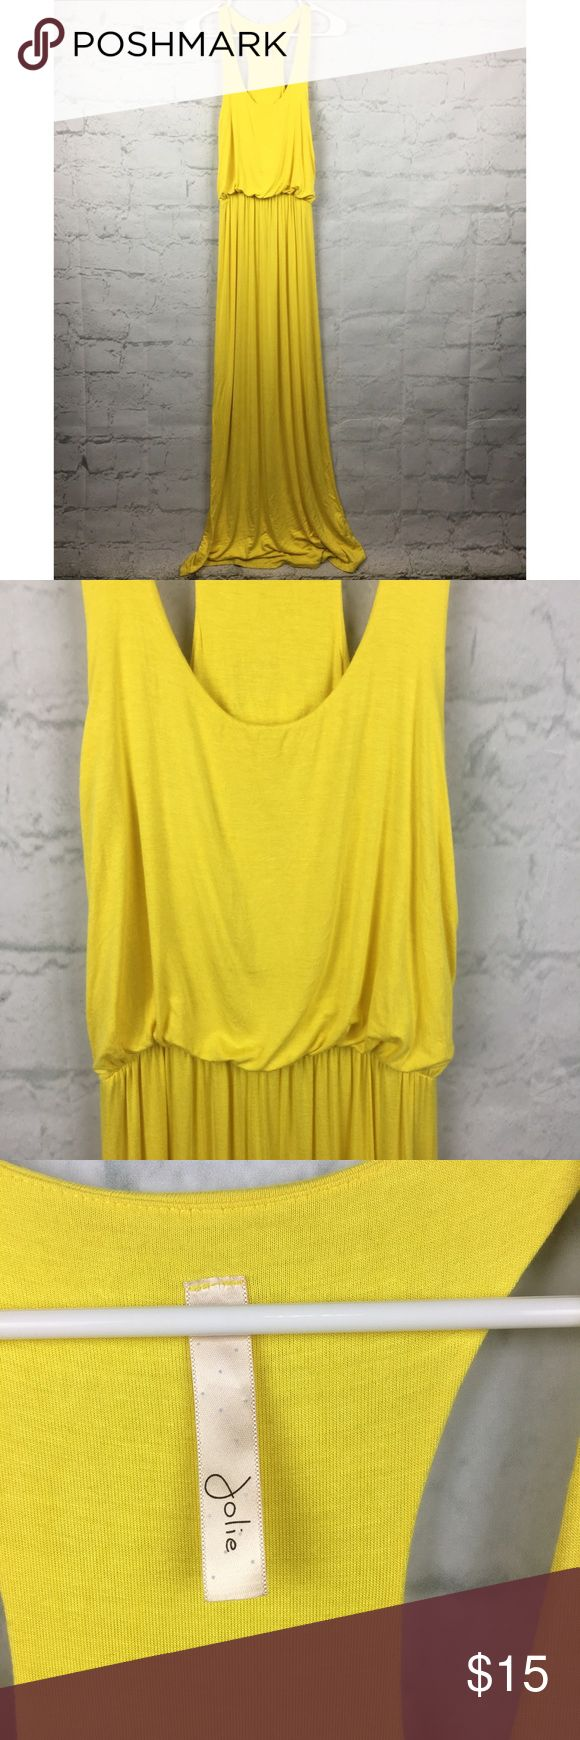 "Jolie Long Racerback yellow Maxi dress size S Super cute and fun for summer. Long bright yellow Maxi dress. Size small. Armpit to armpit laying flat- 14"". Length- 63"".       97% rayon, 3% spandex jolie Dresses Maxi"